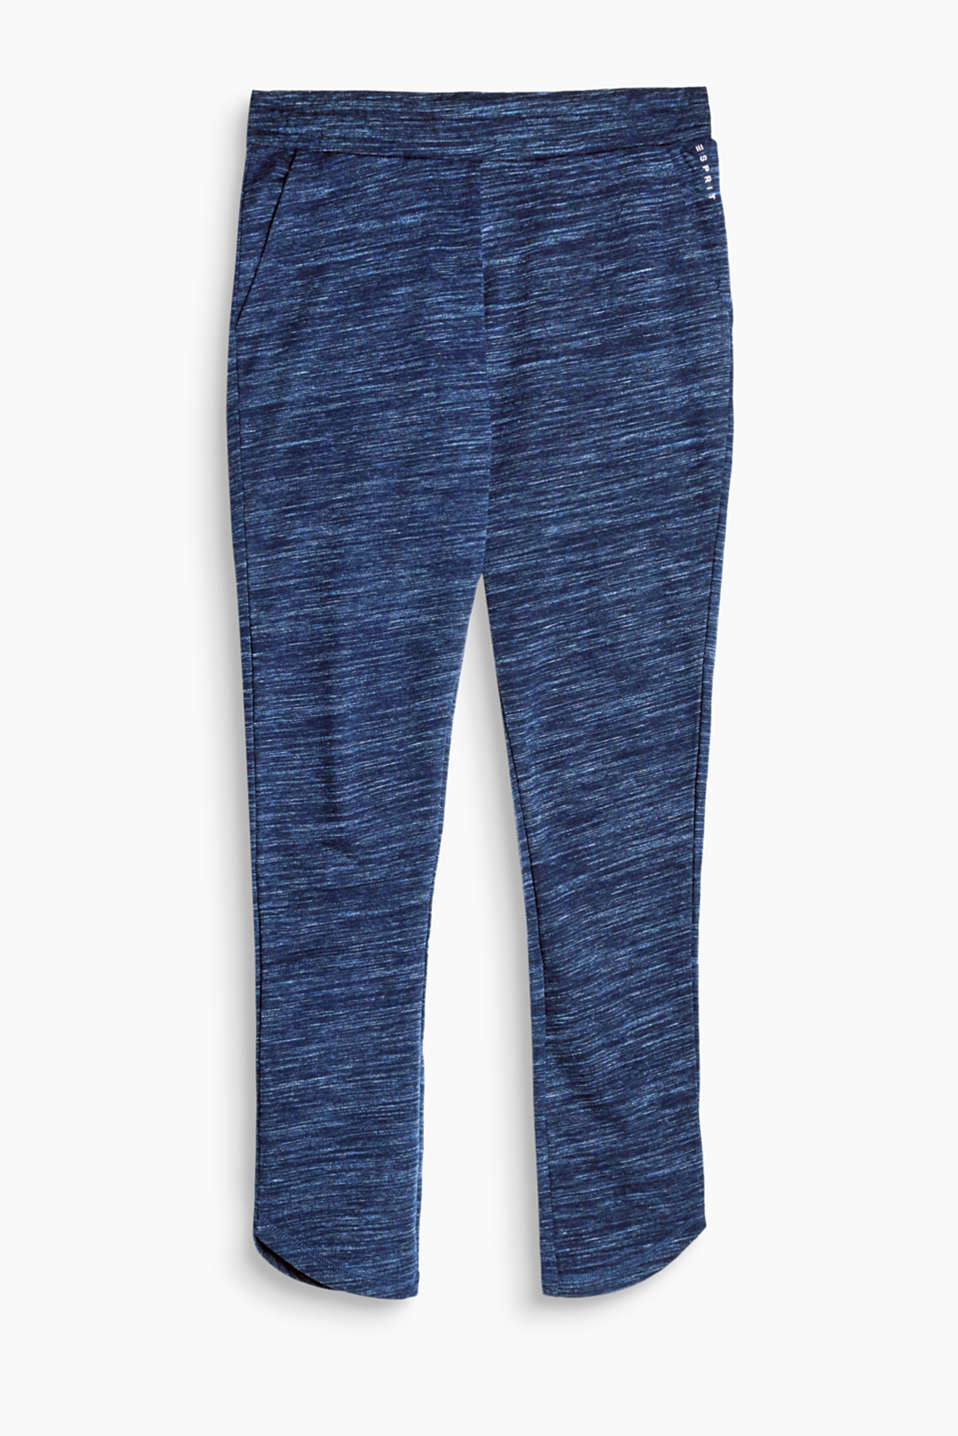 Casual tracksuit bottoms with a wide, elasticated waistband, in soft jersey with a topstitched seat pocket